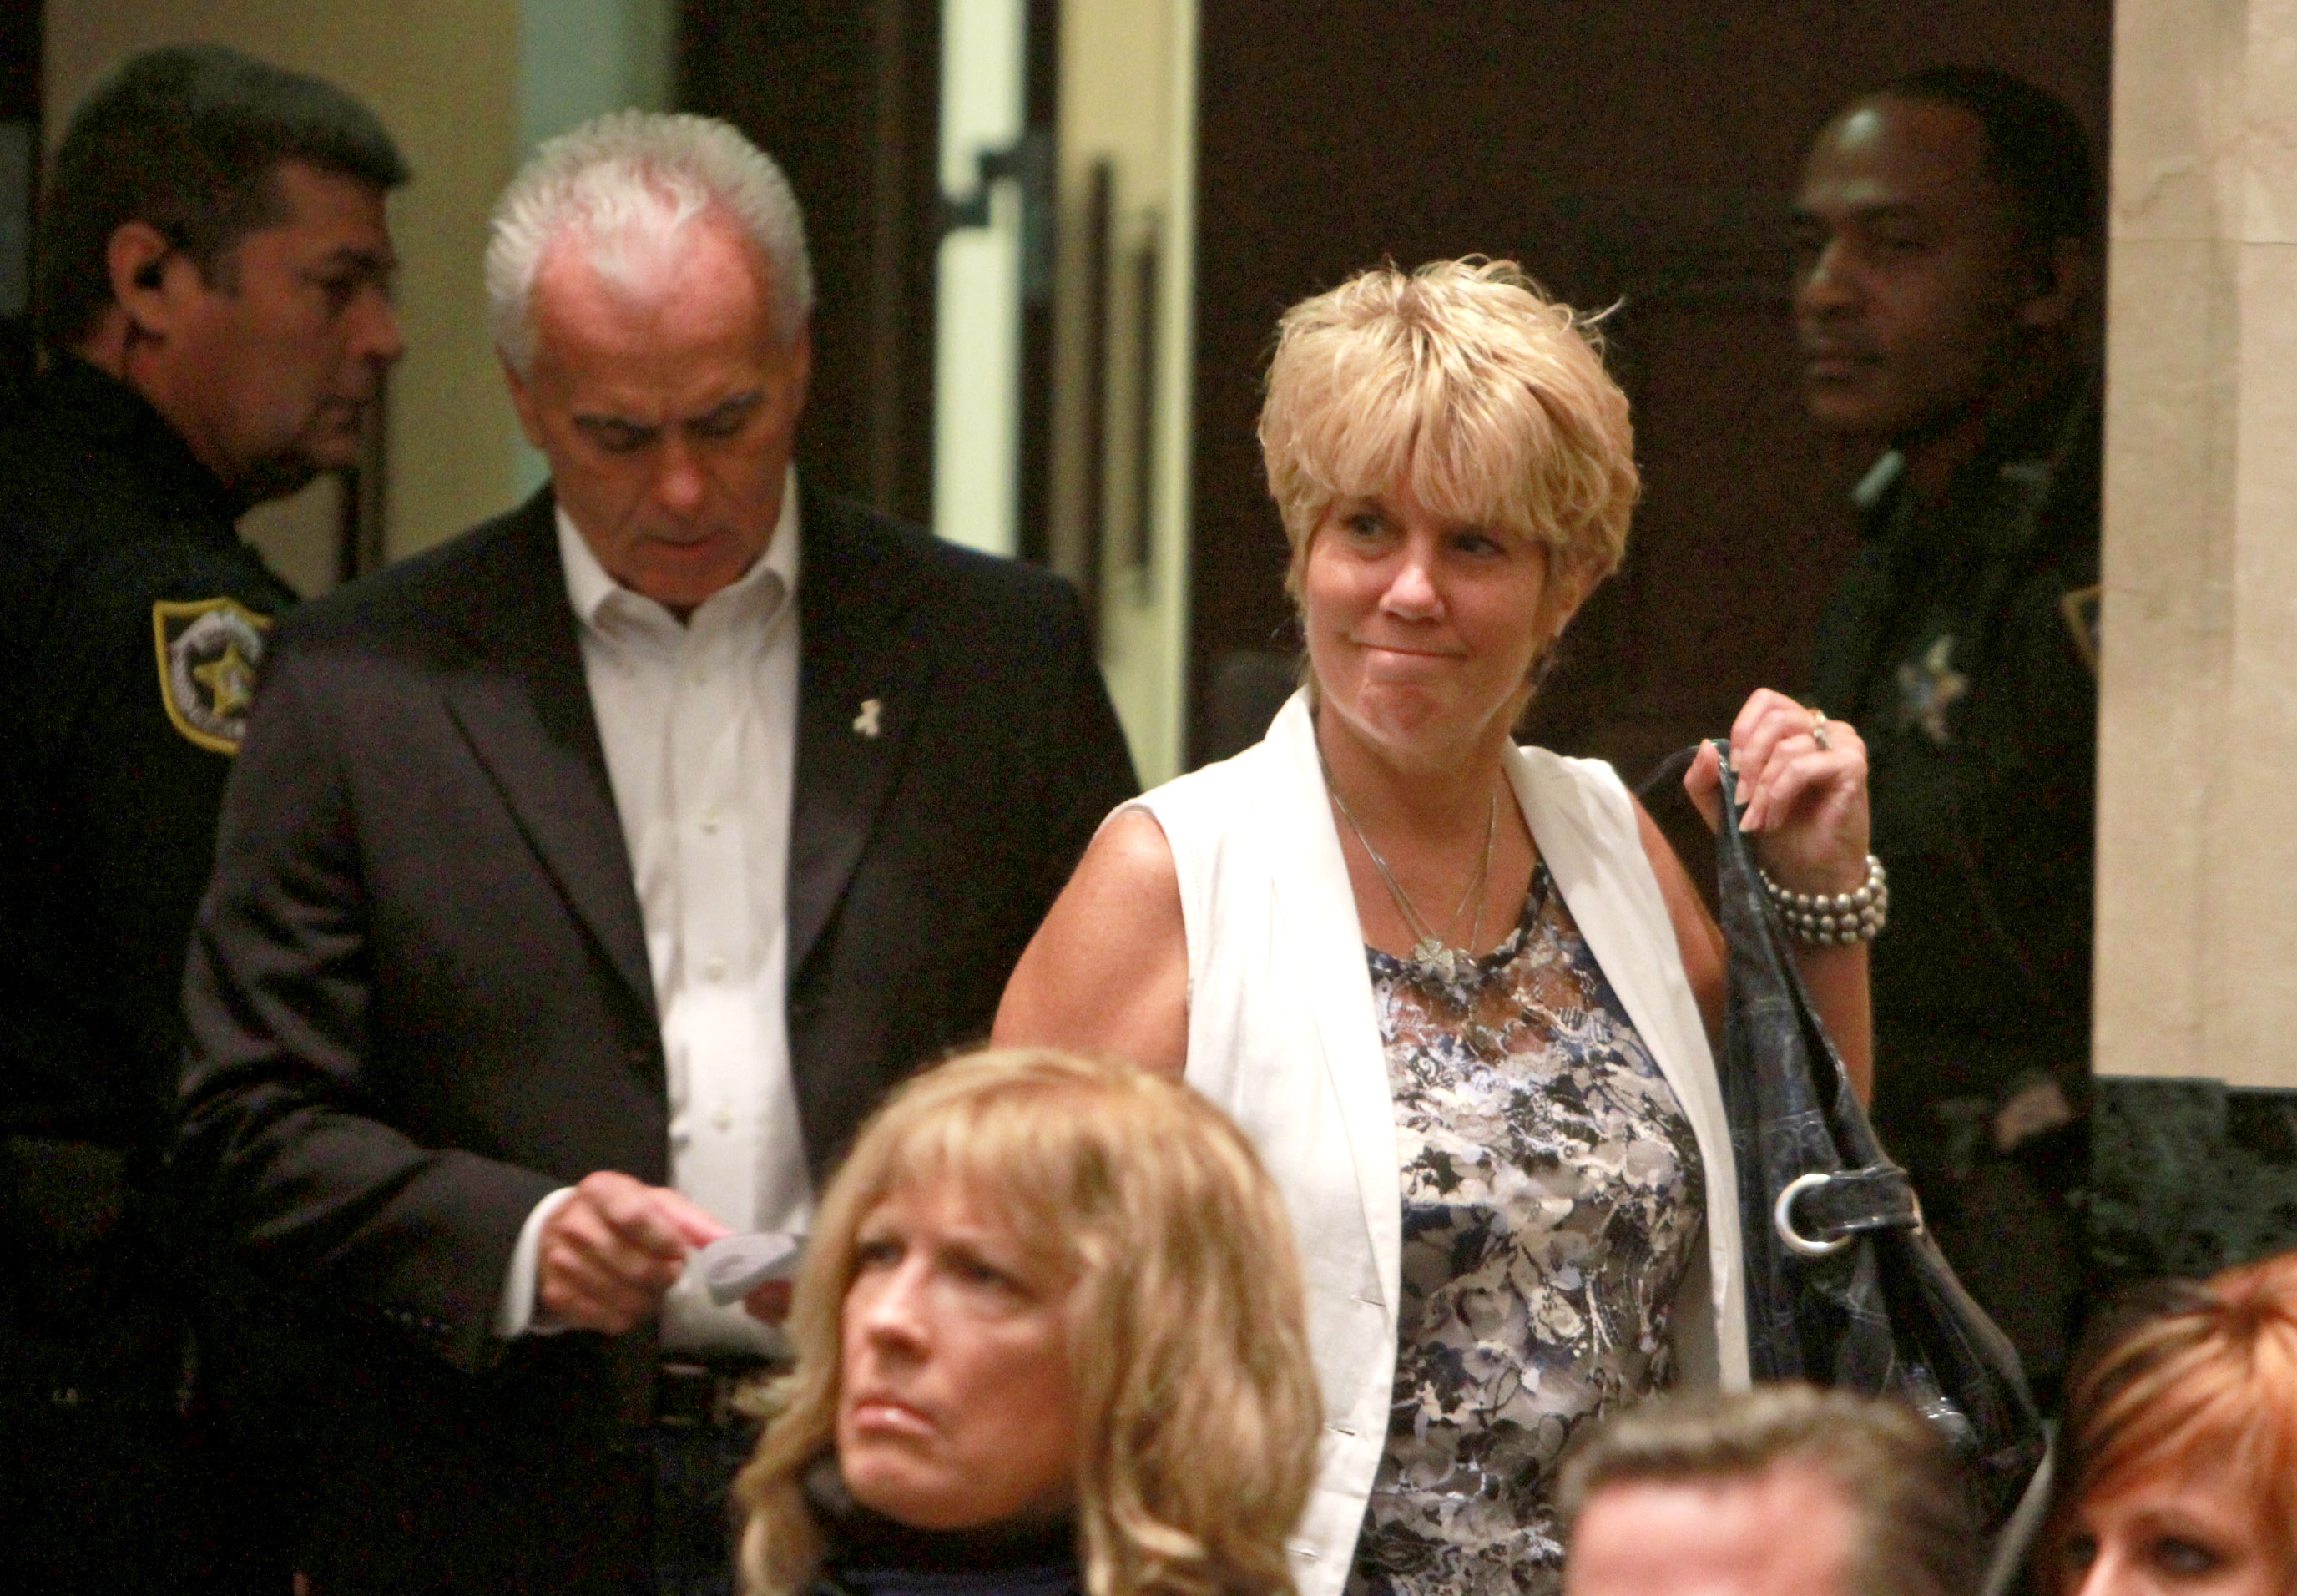 George (2nd L) and Cindy Anthony (2nd R) enter the courtroom of their daughter, Casey Anthony's sentencing on charges of lying to a law enforcement officer at the Orange County Courthouse July 7, 2011 in Orlando, Florida.